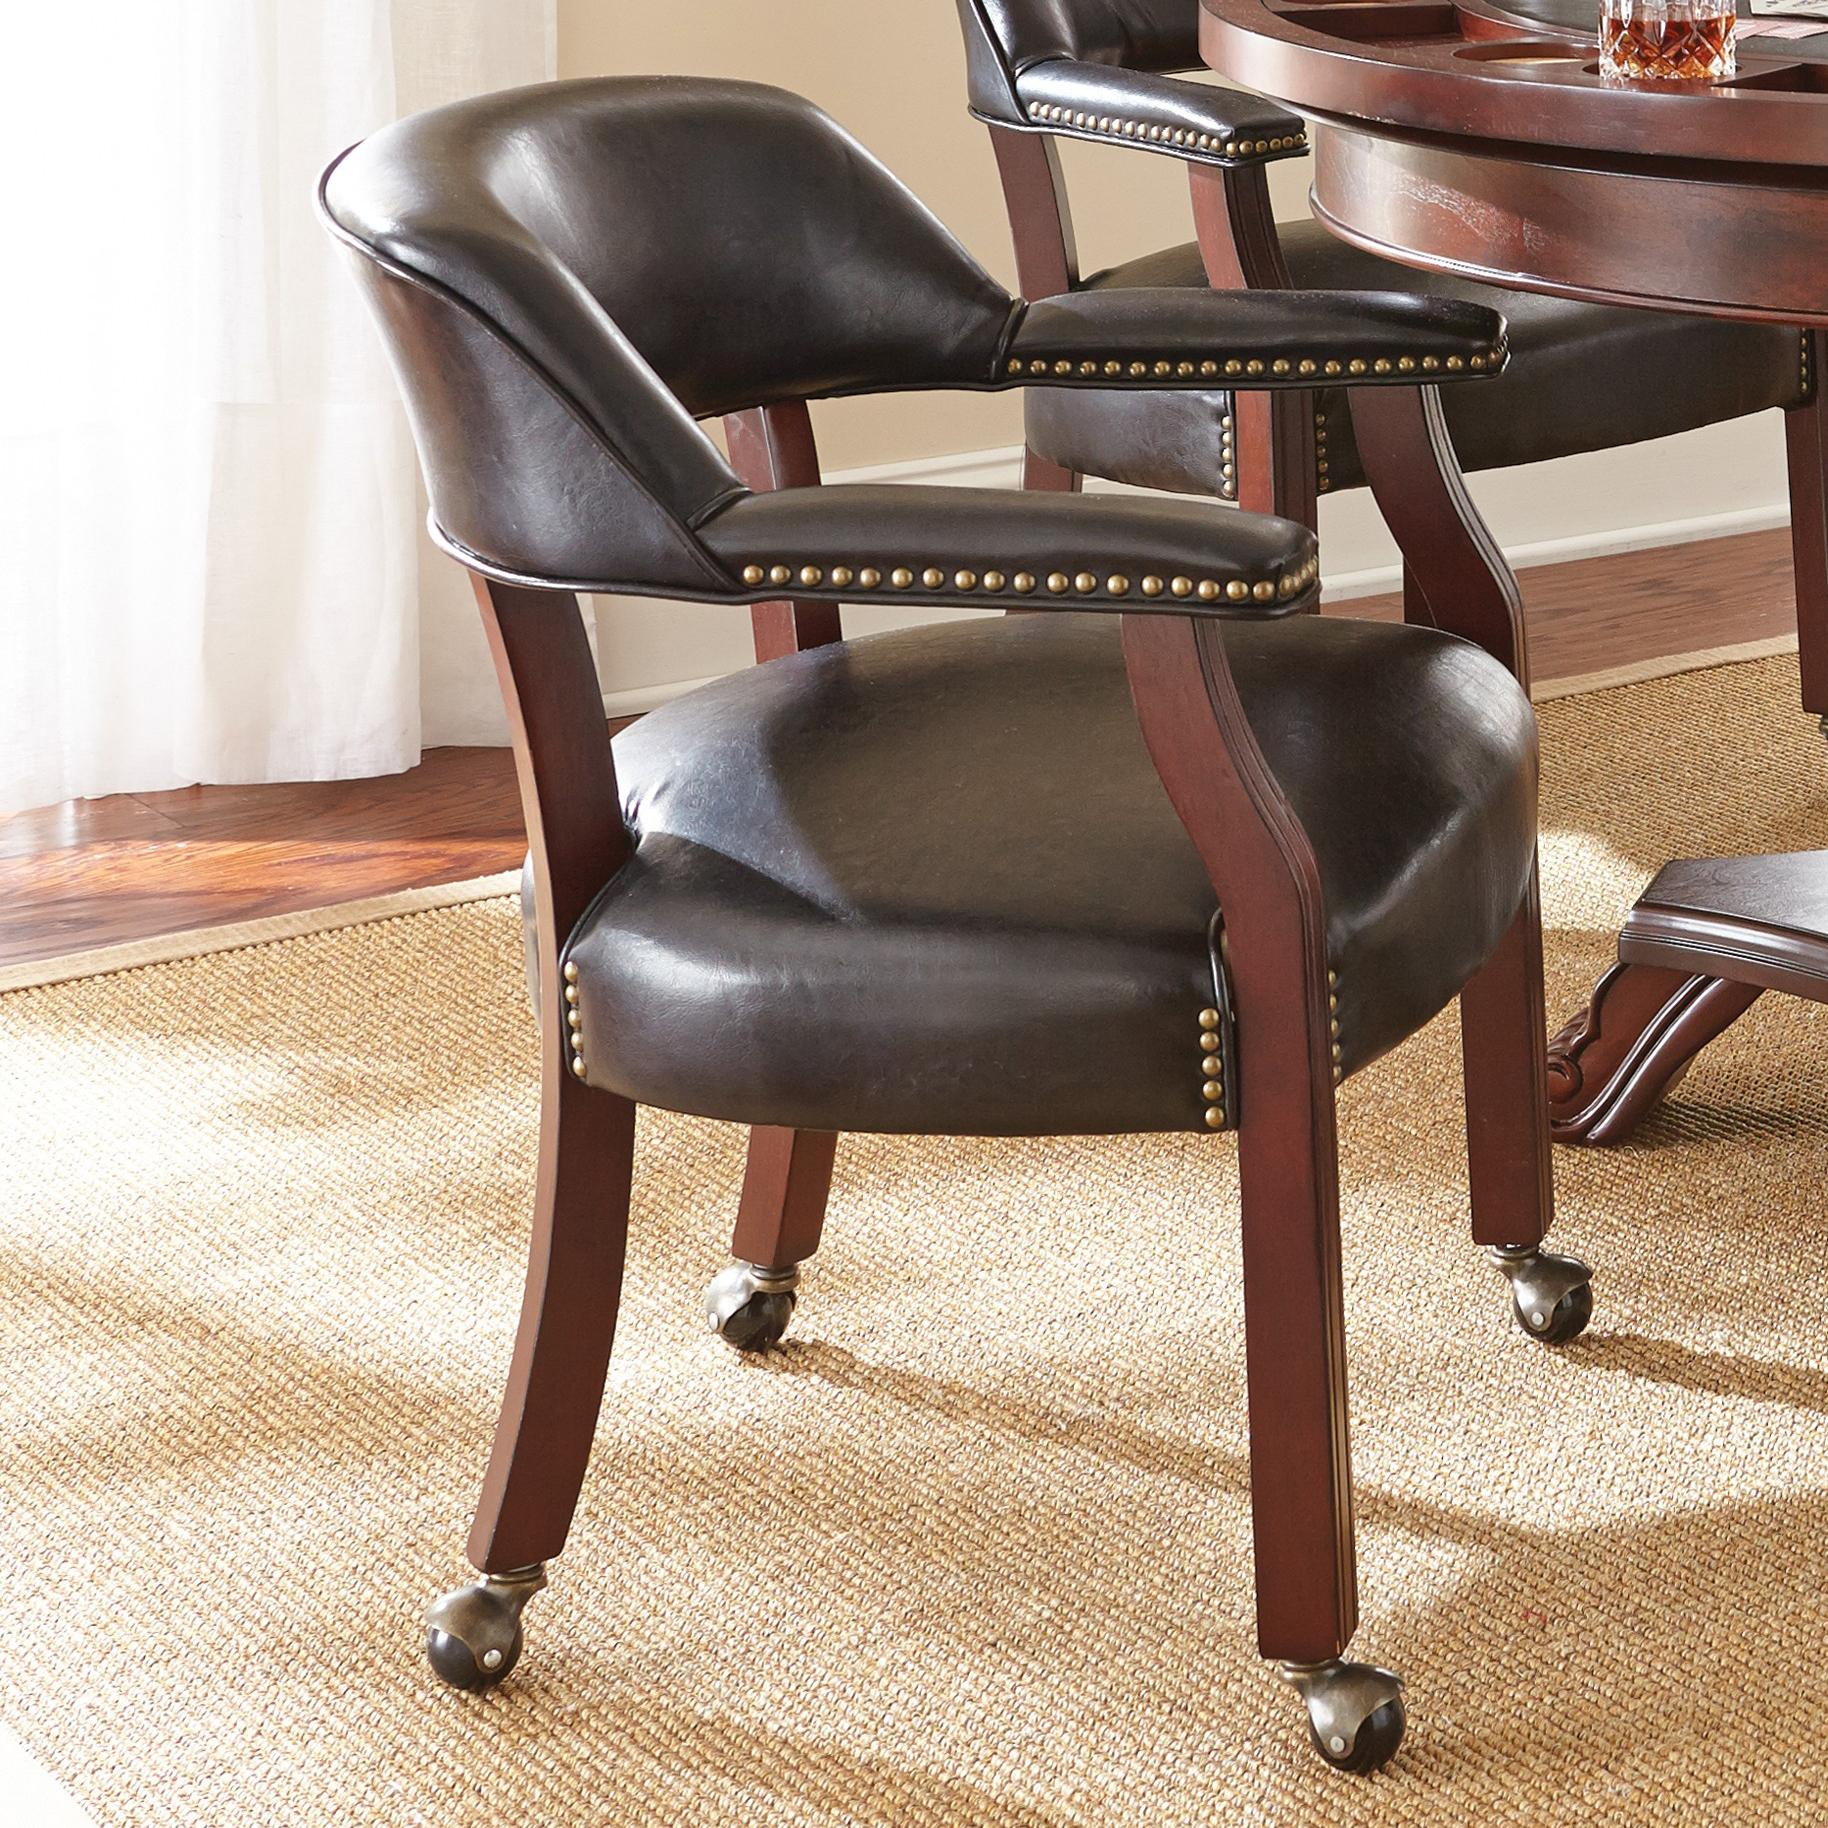 Dining Chairs Casters: Prime Tournament Tournament Game Arm Chair With Casters